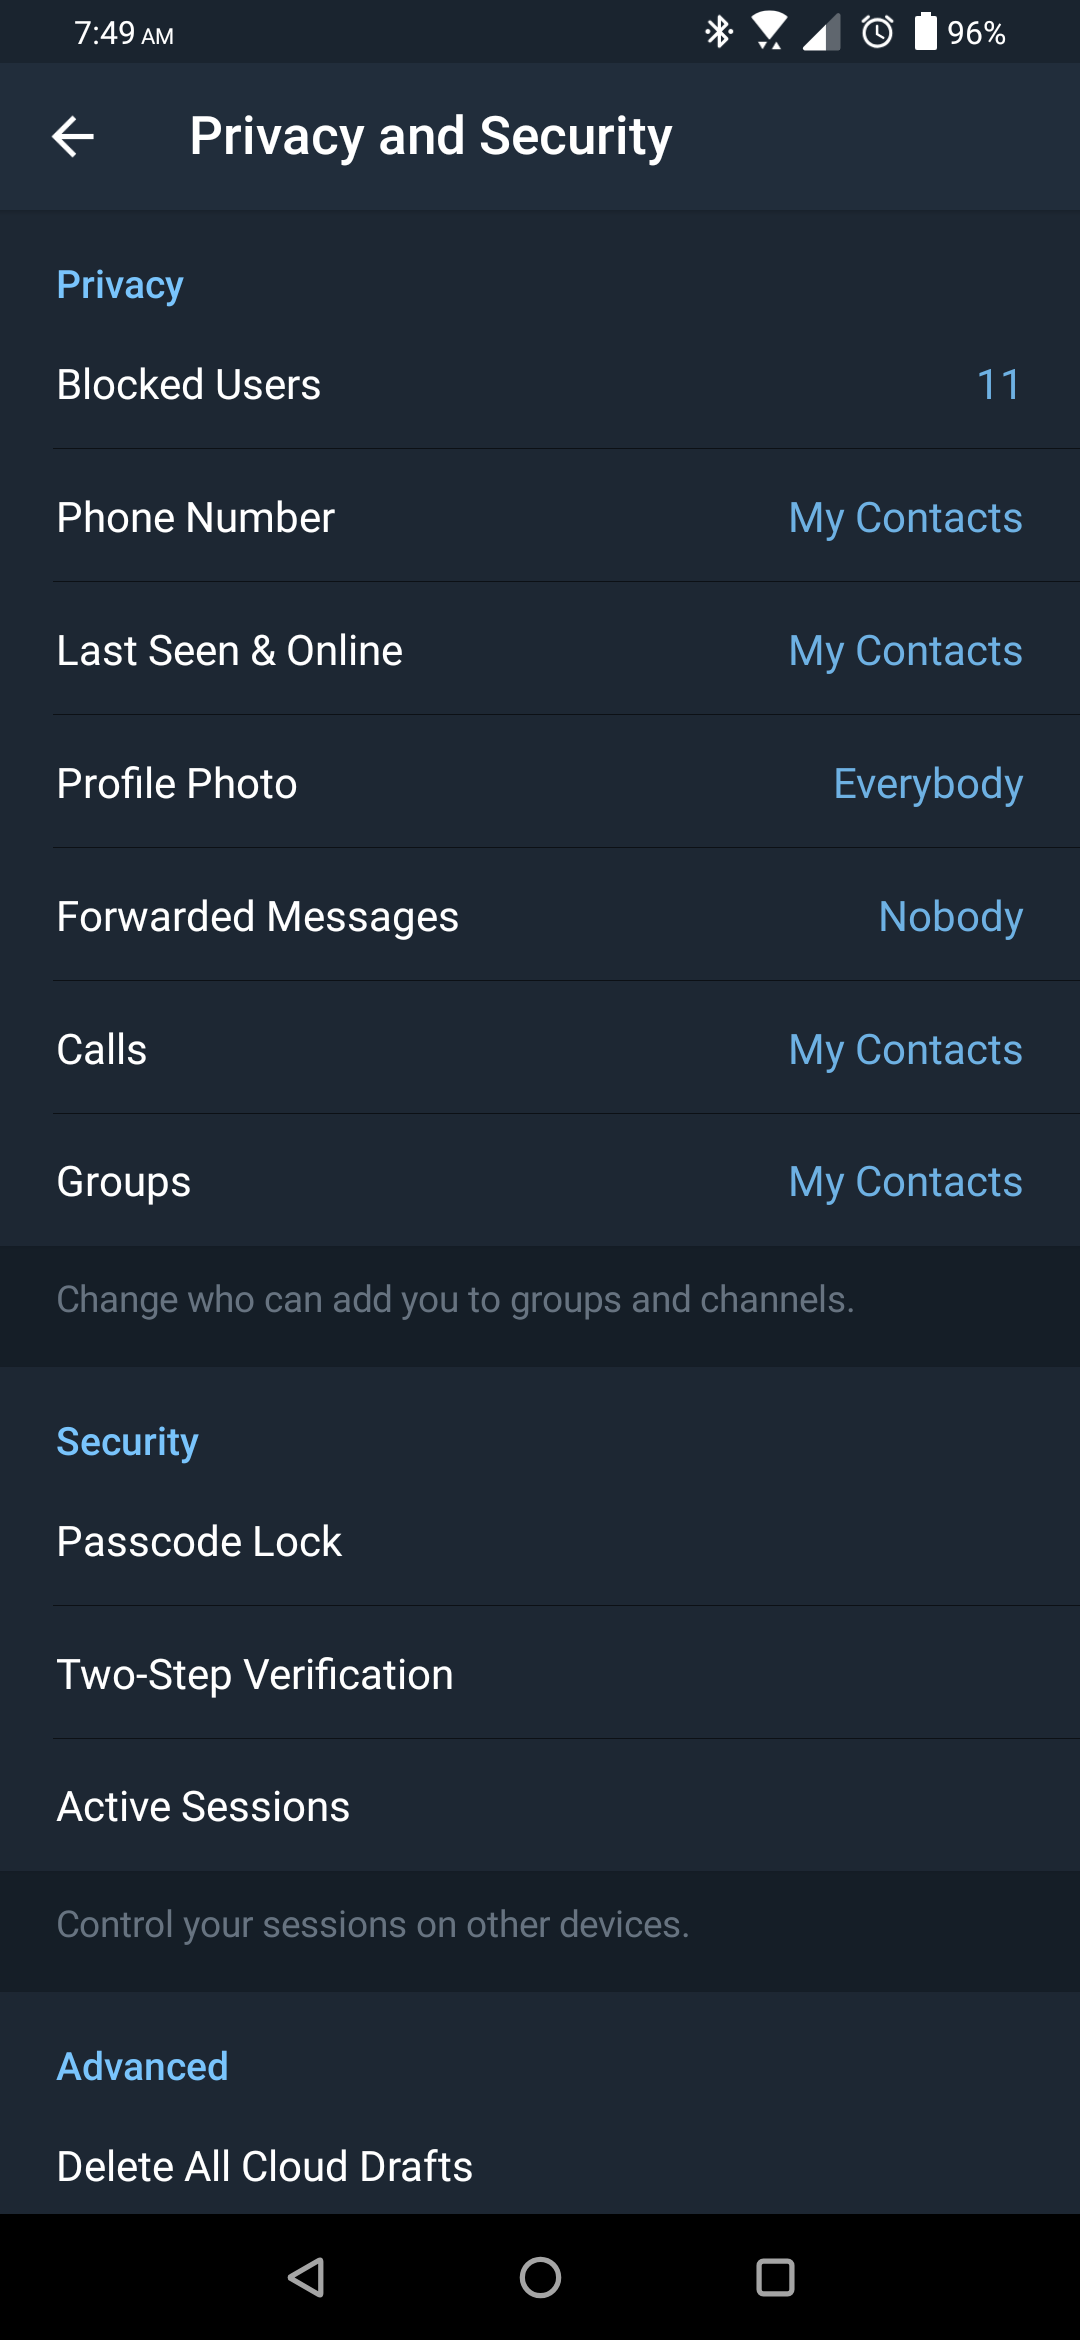 Telegram 5 7 further enhances privacy, improves group and